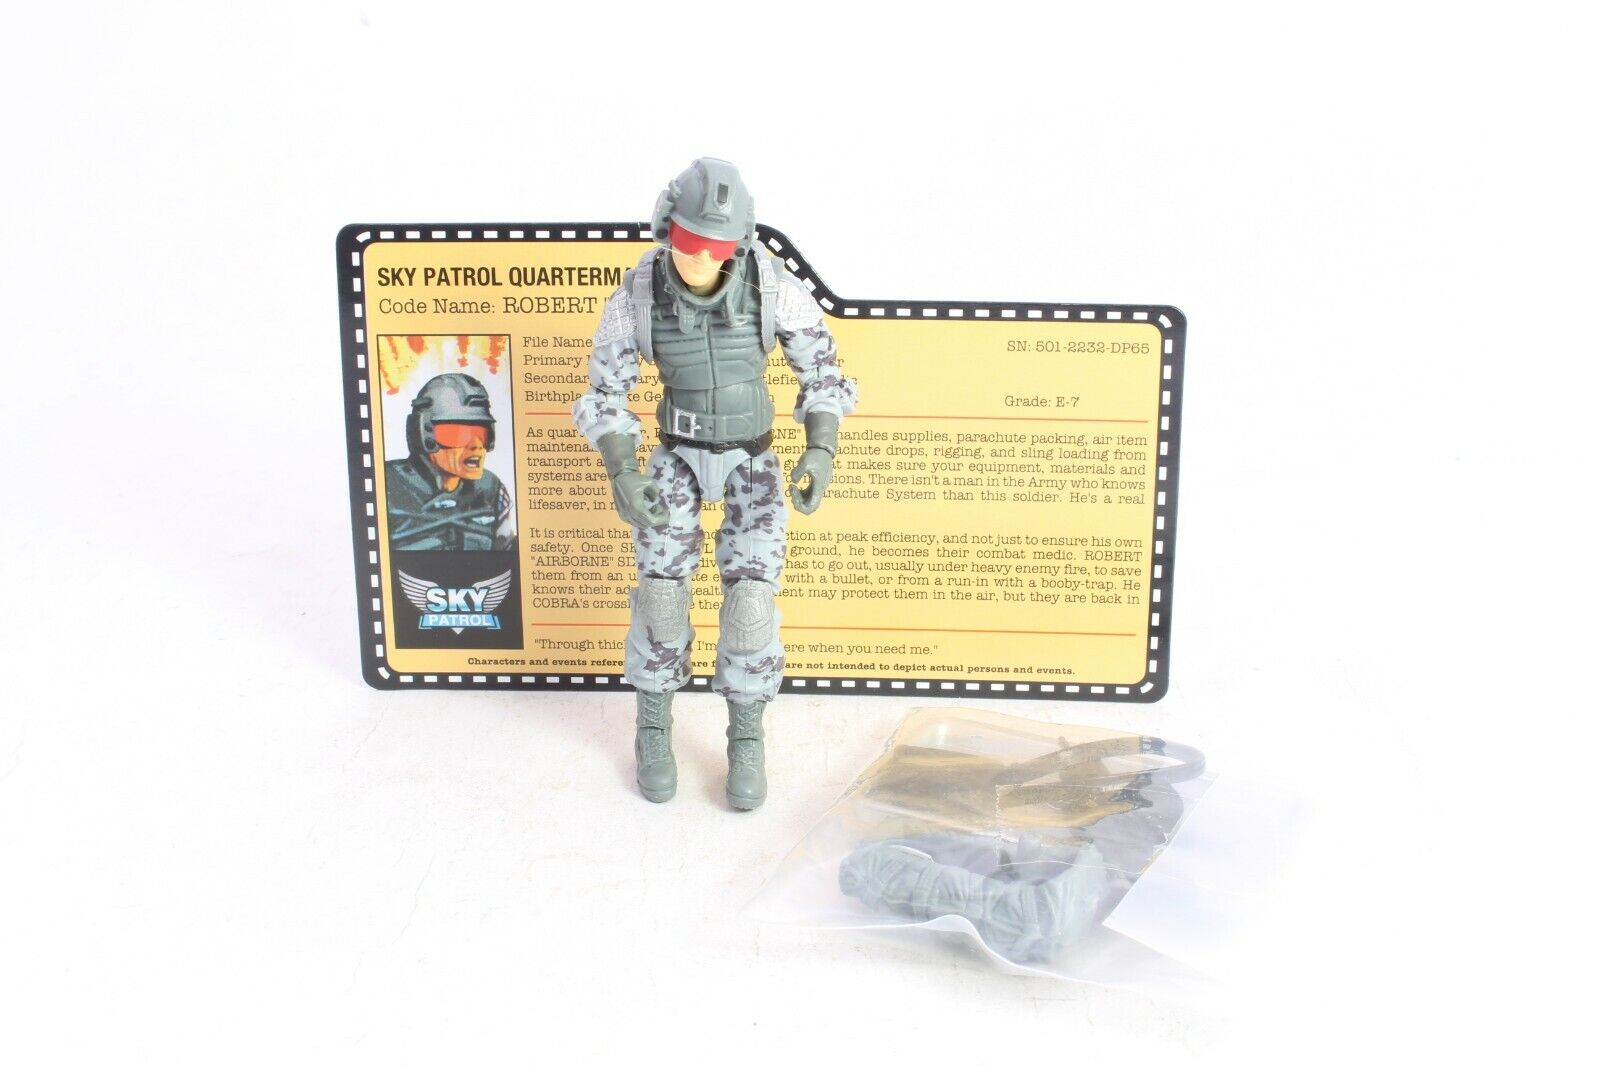 GI Joe Airborne Anniversary Convention Exclusive Sky Patrol Mint